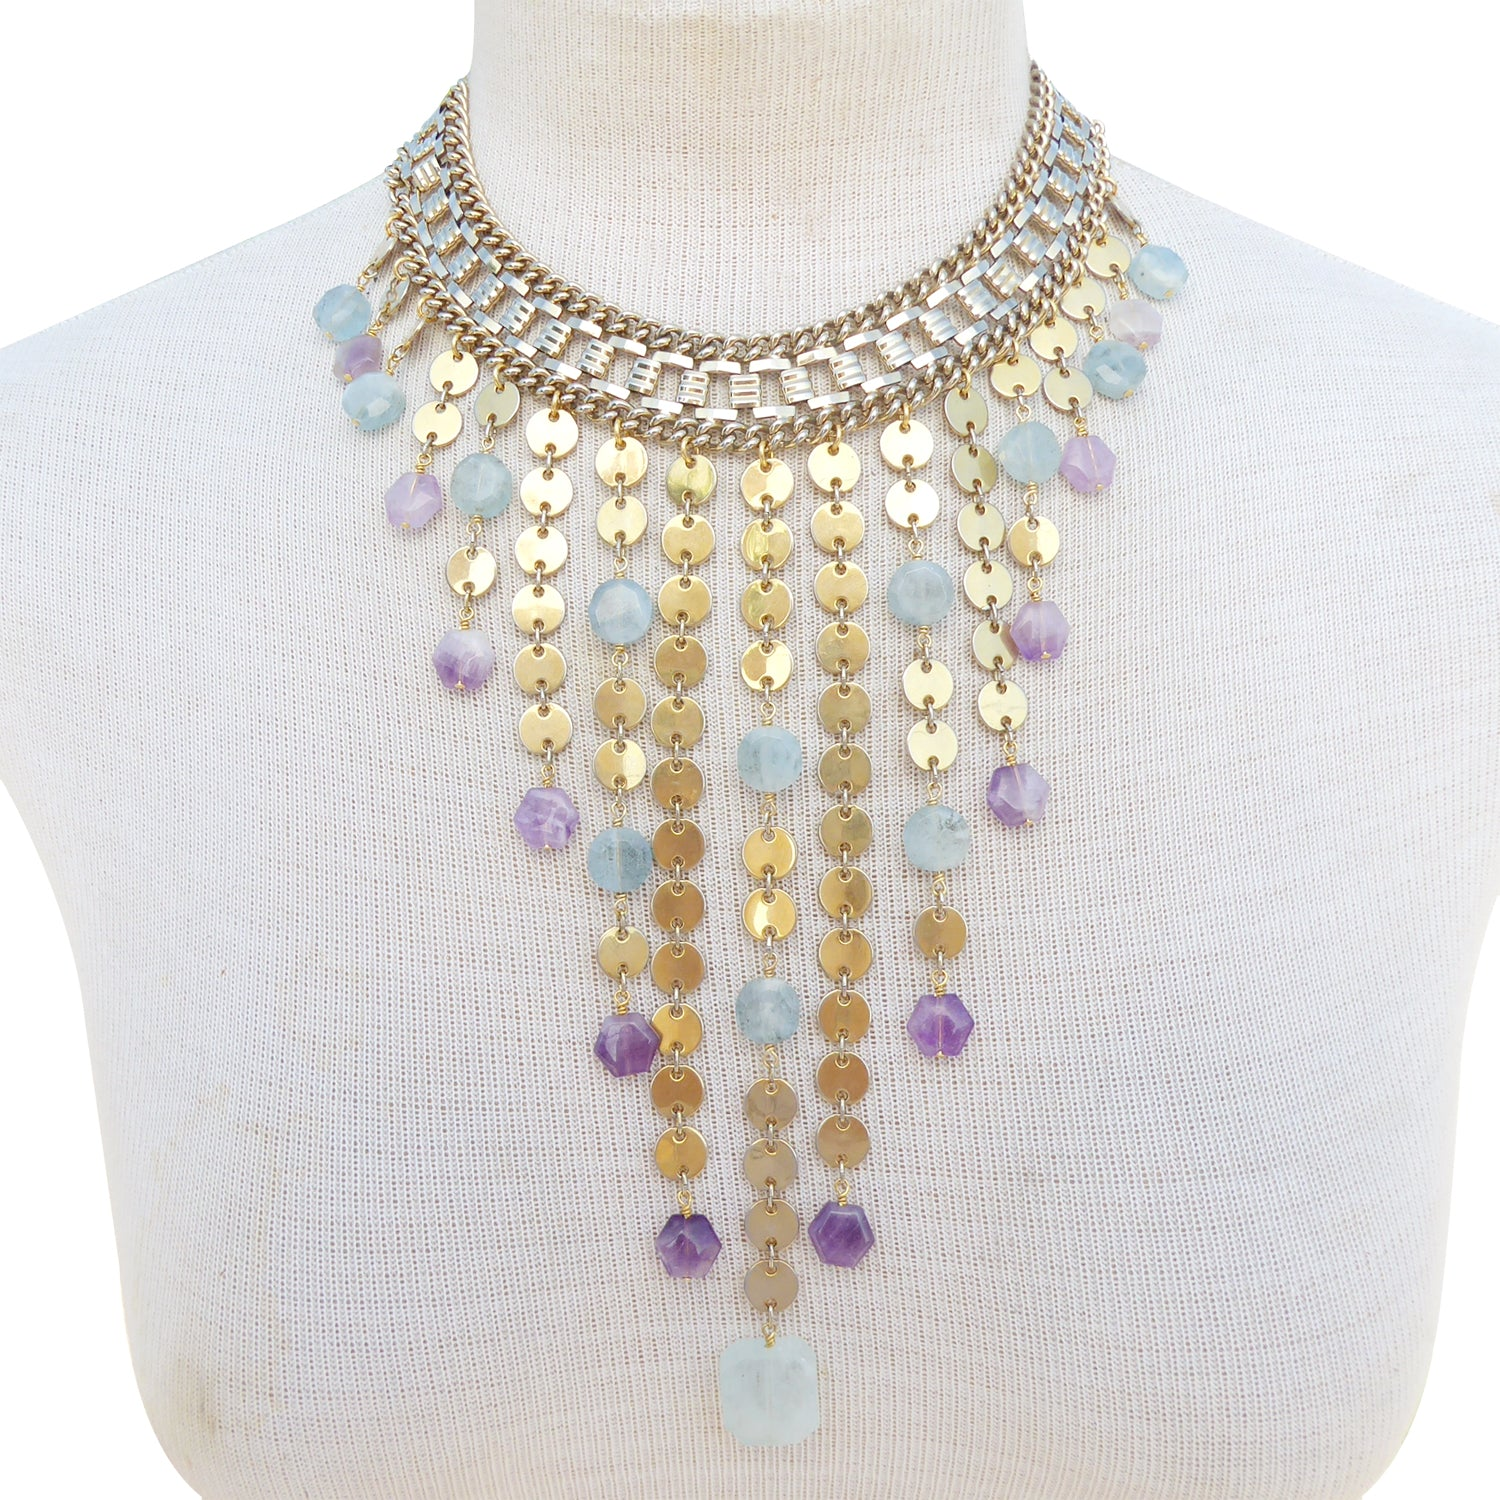 Carmeline aquamarine and amethyst necklace by Jenny Dayco 8